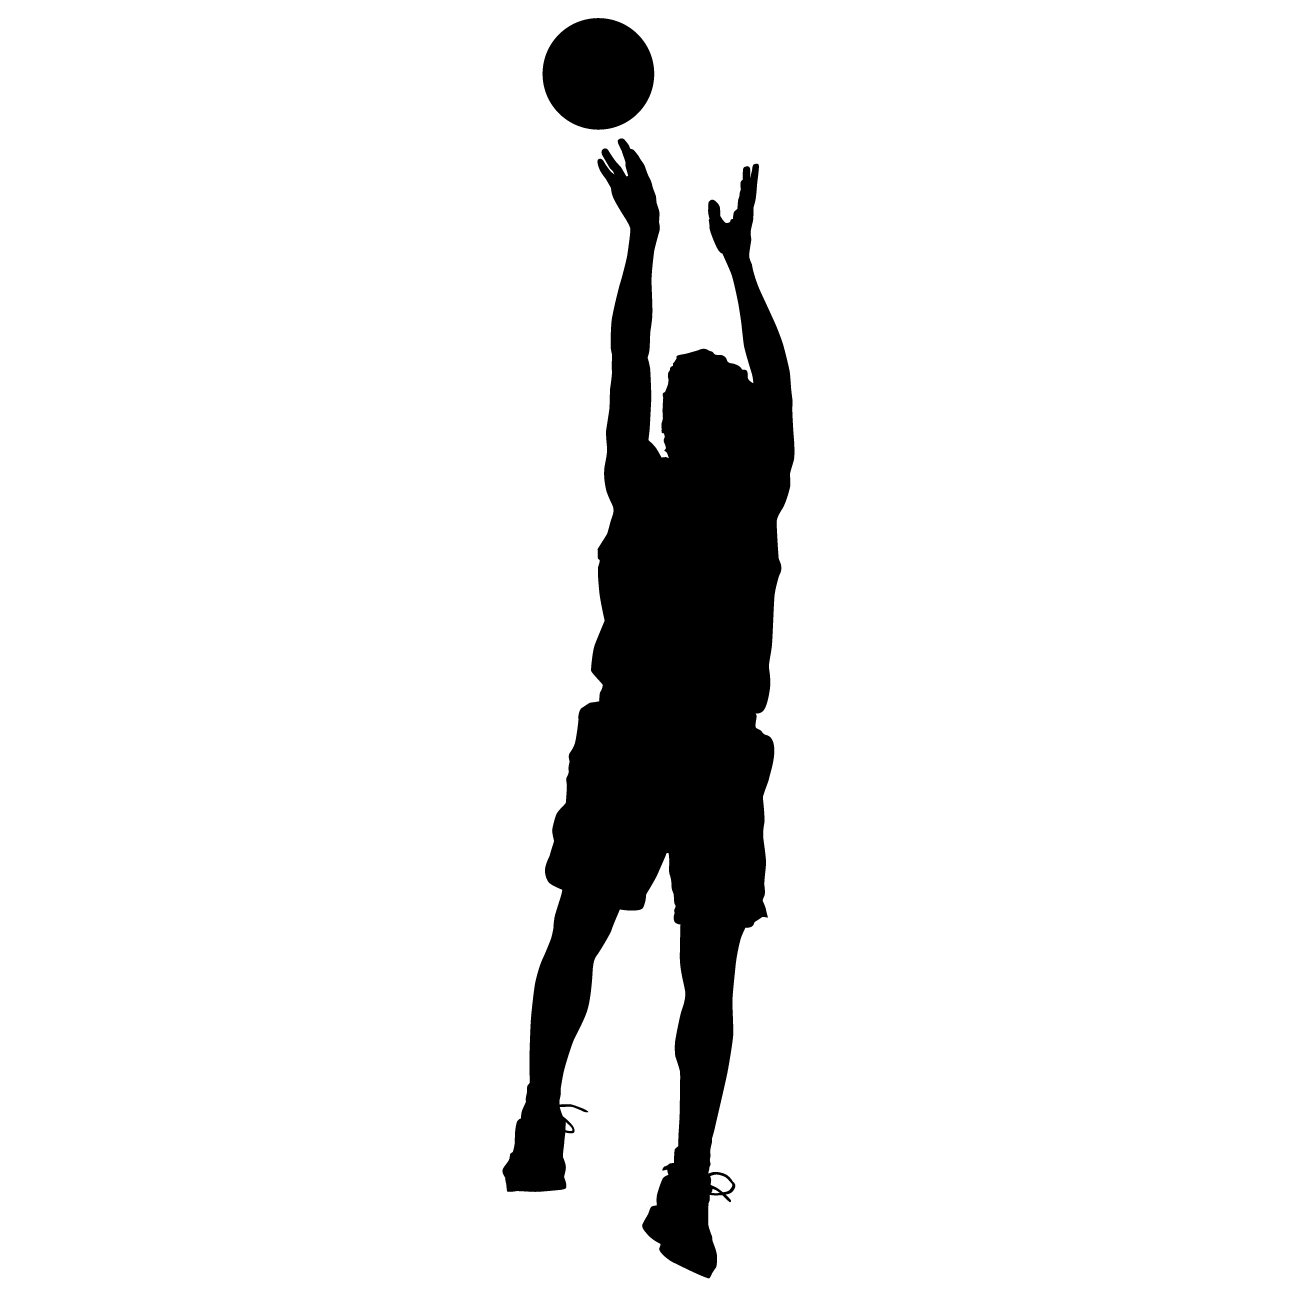 amazon com basketball wall decal sticker 39 decal stickers and amazon com basketball wall decal sticker 39 decal stickers and mural for kids boys girls room and bedroom sport vinyl decor wall art for home decor and